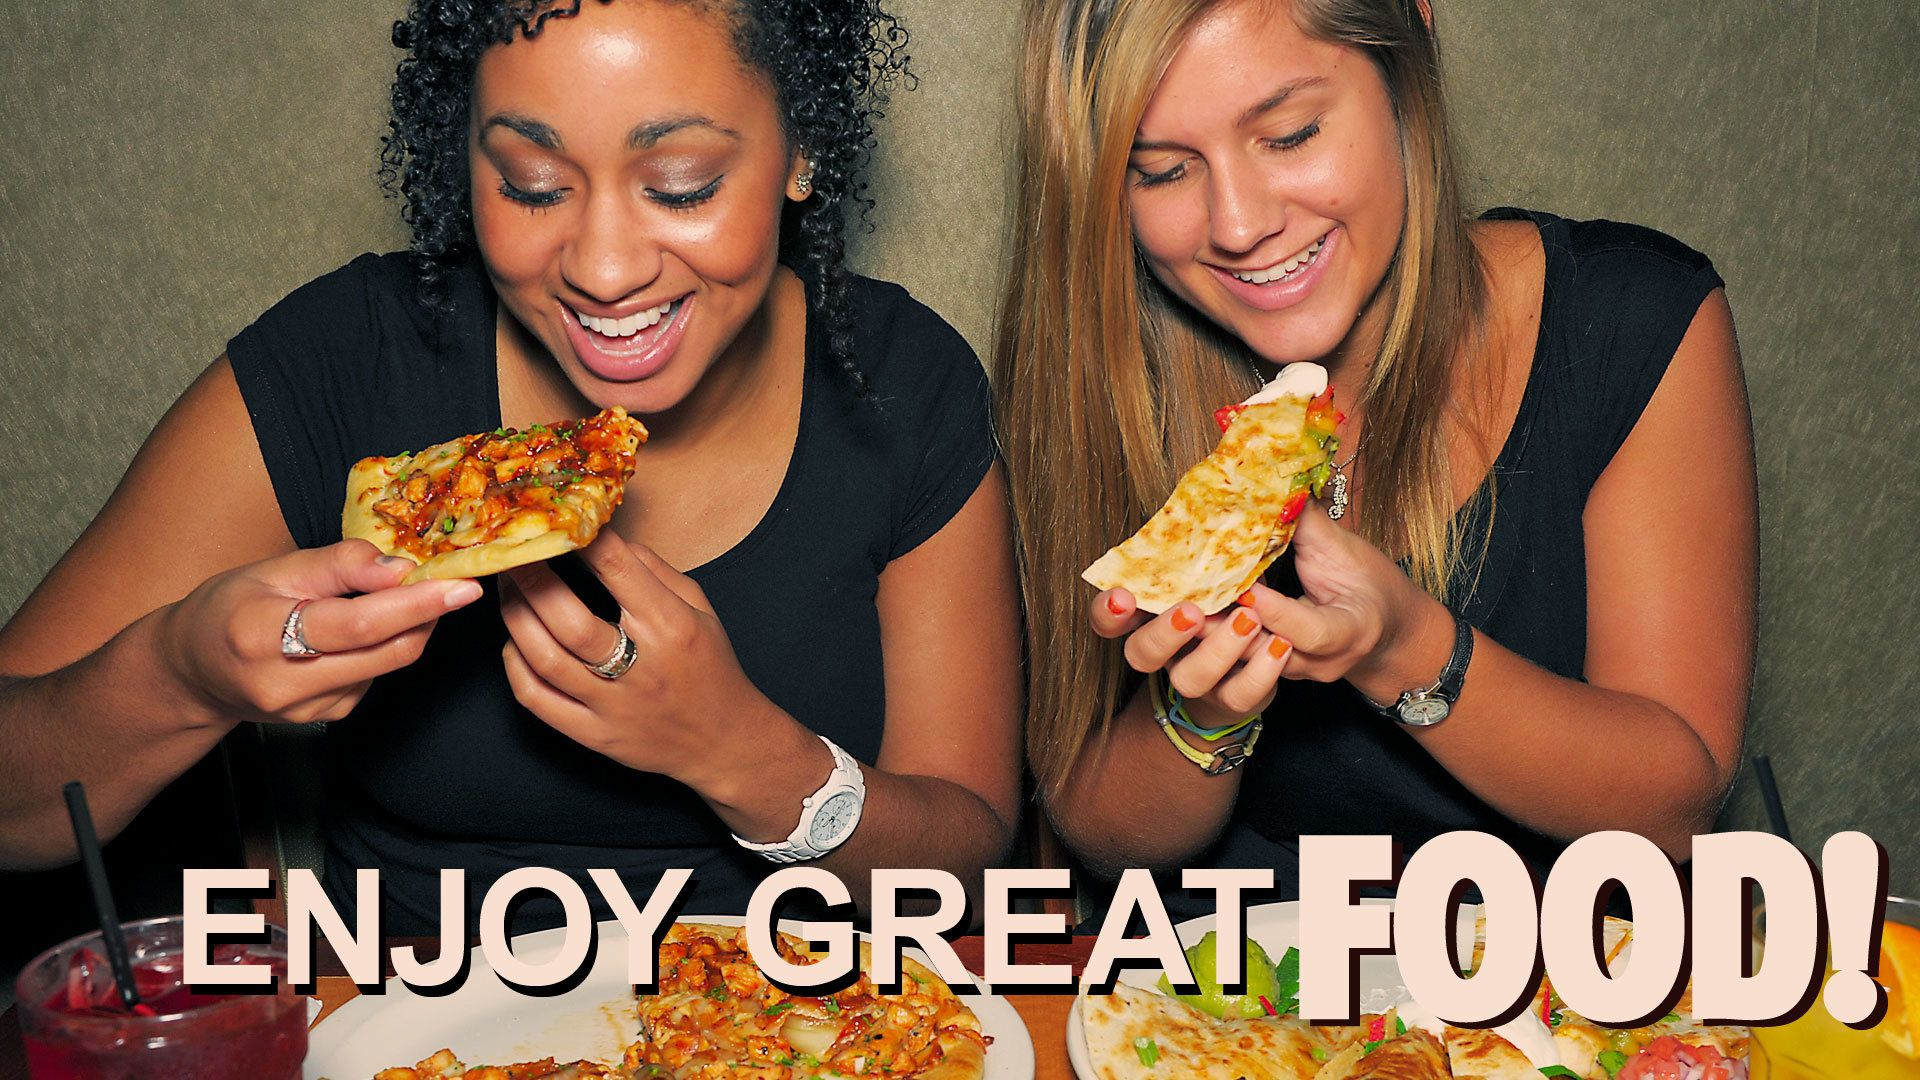 Enjoy_Great_food_at_GameTime_Miami_Tampa_Fort_Myers